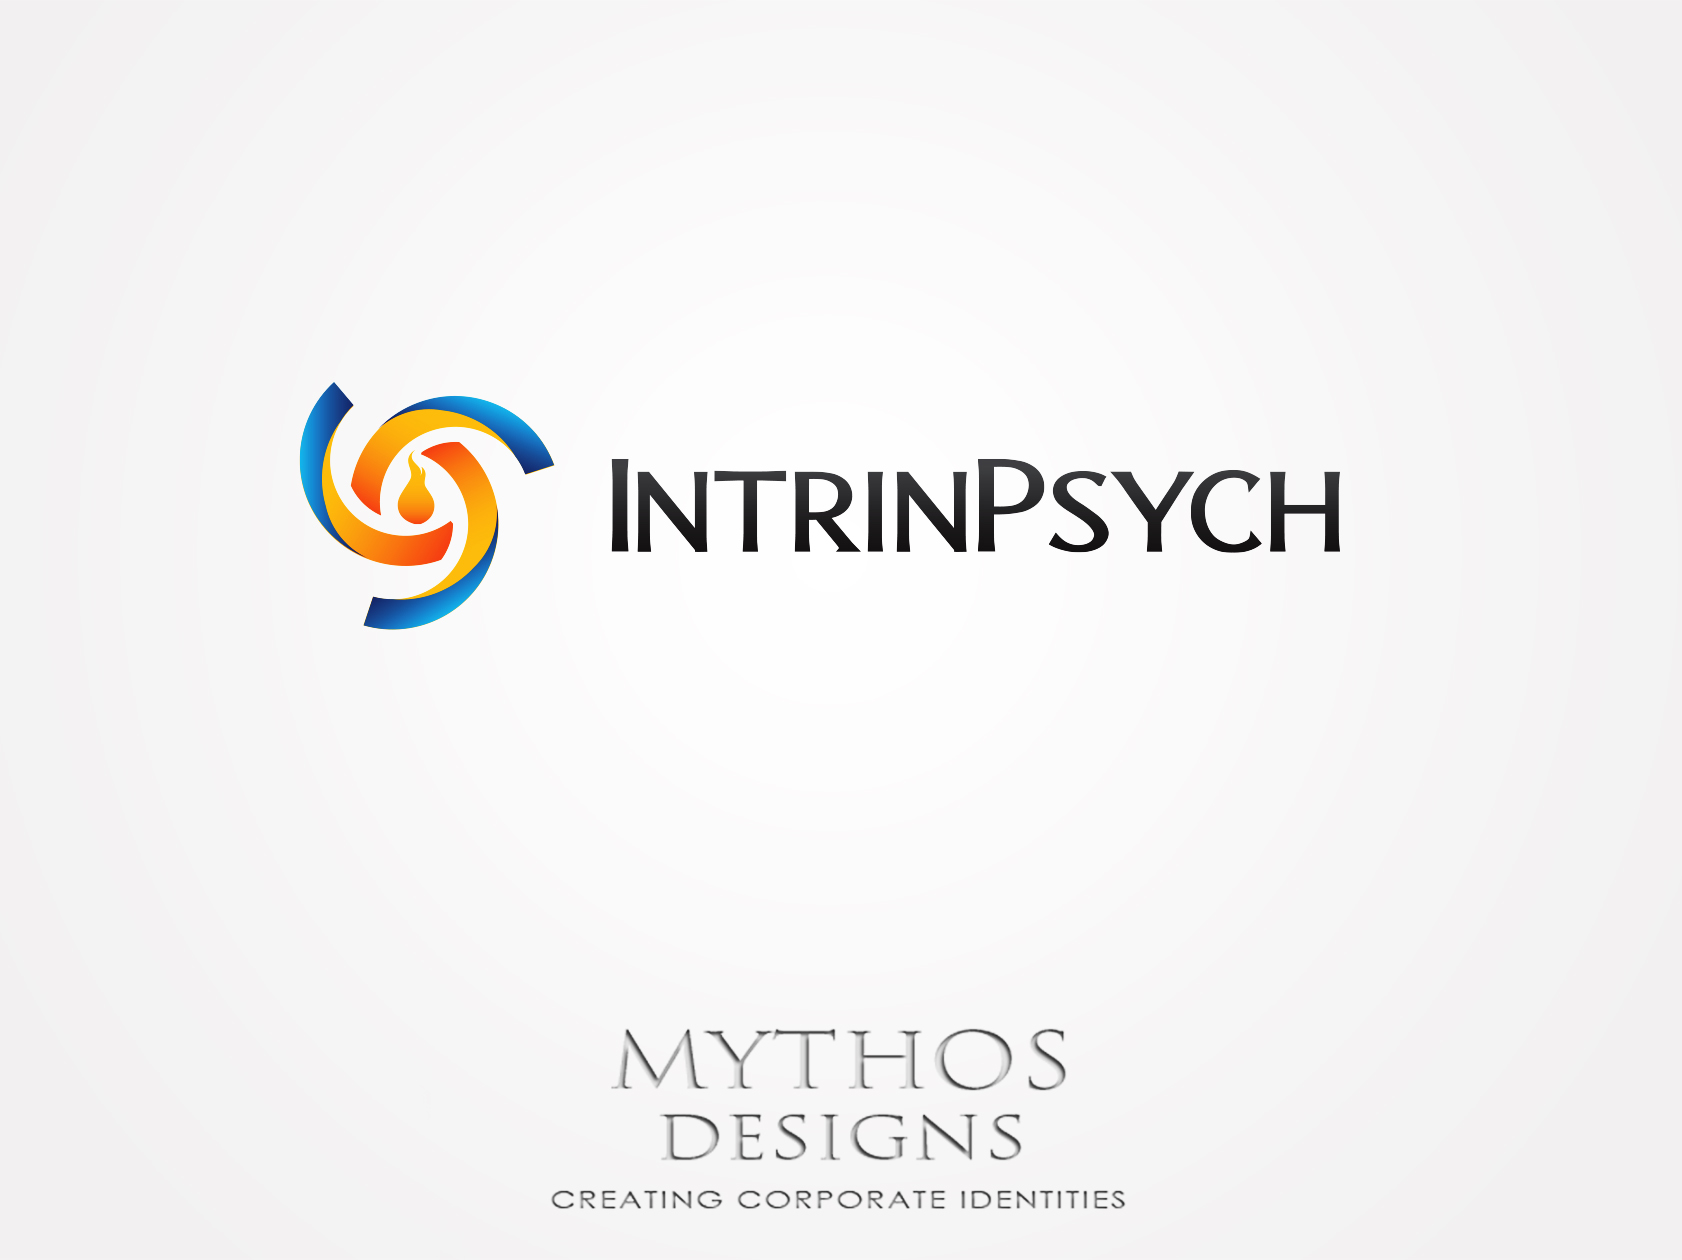 Logo Design by Mythos Designs - Entry No. 139 in the Logo Design Contest New Logo Design for IntrinPsych.